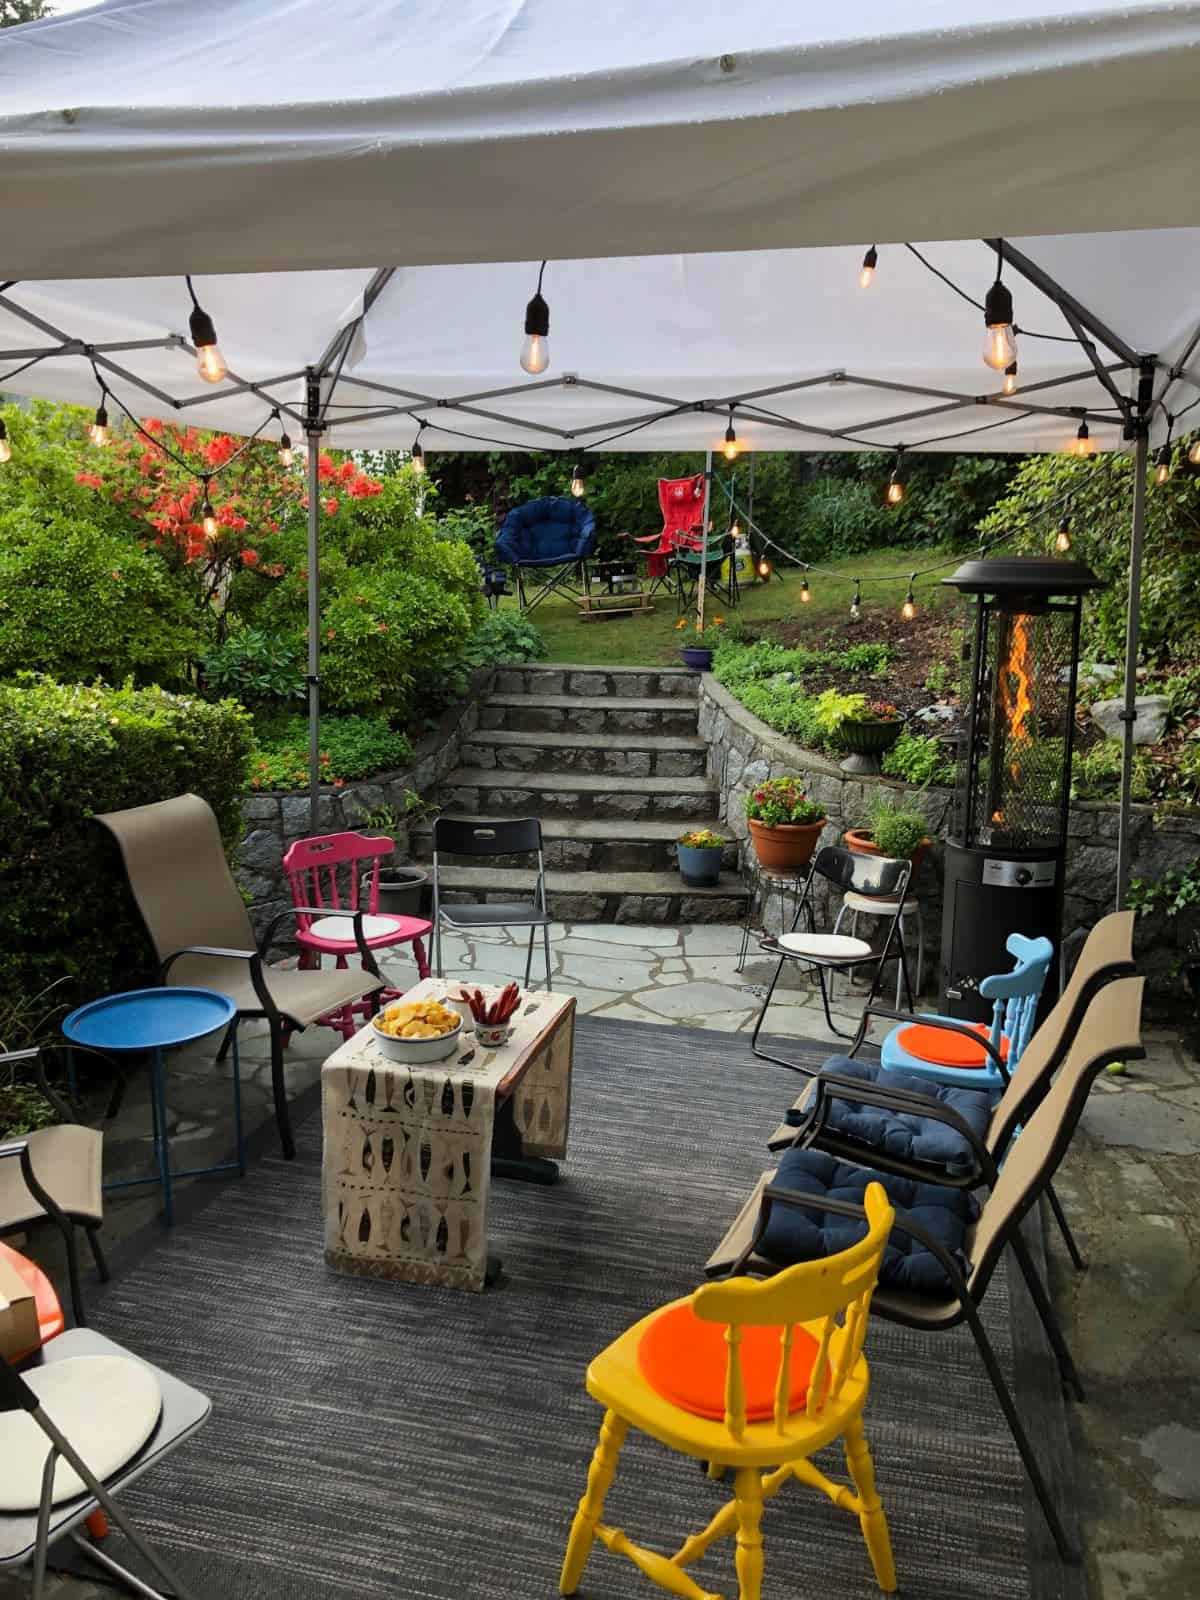 Party patio with tent canopy, string lights and patio heater